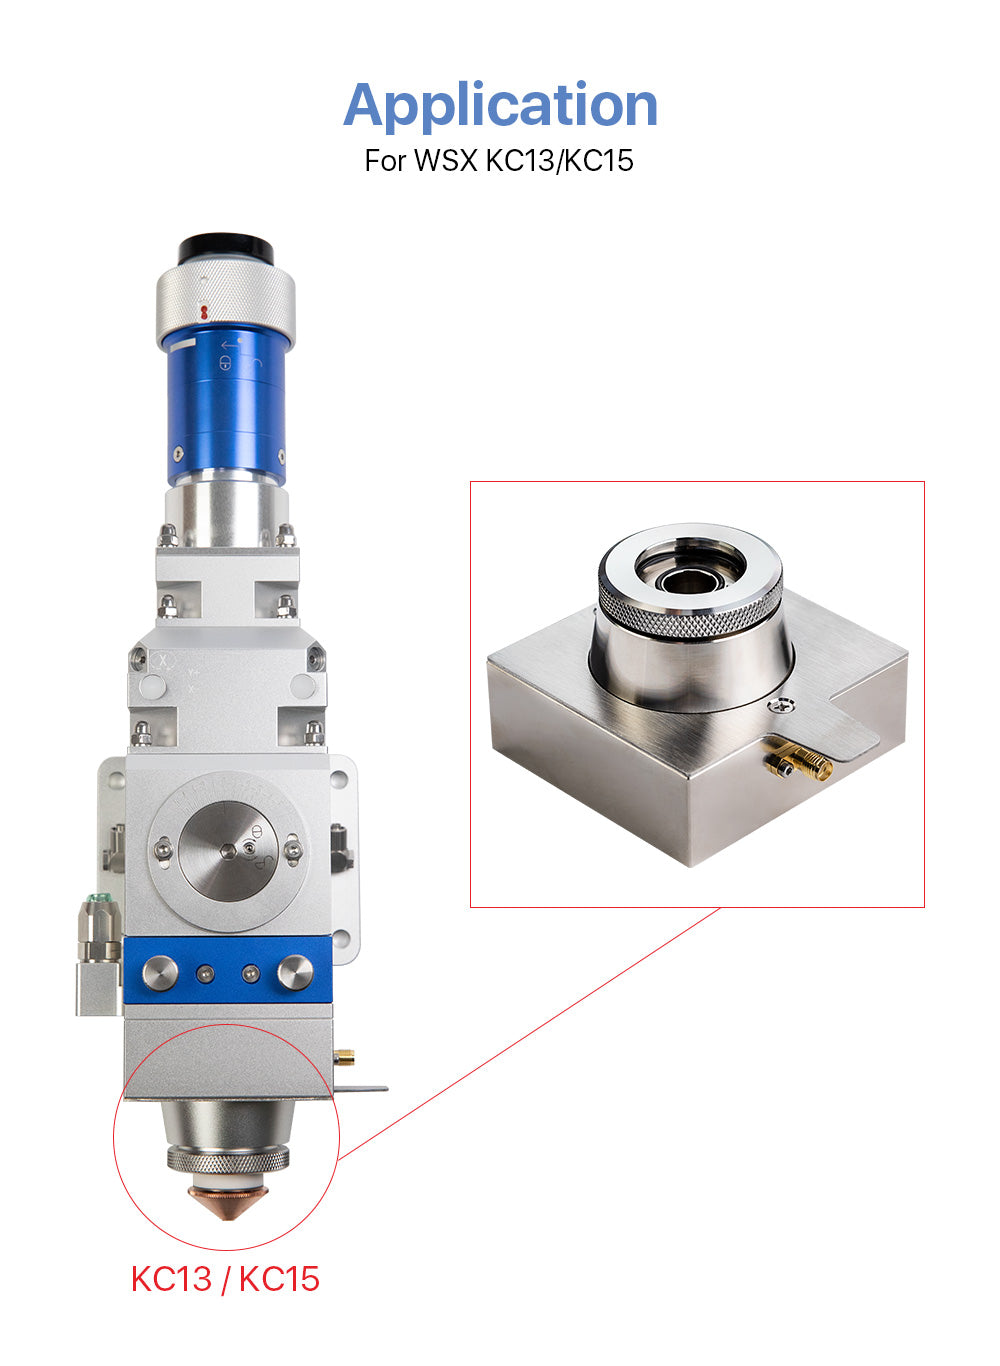 Nozzle Connector for WSX KC13 KC15 Fiber Laser Cutting Head